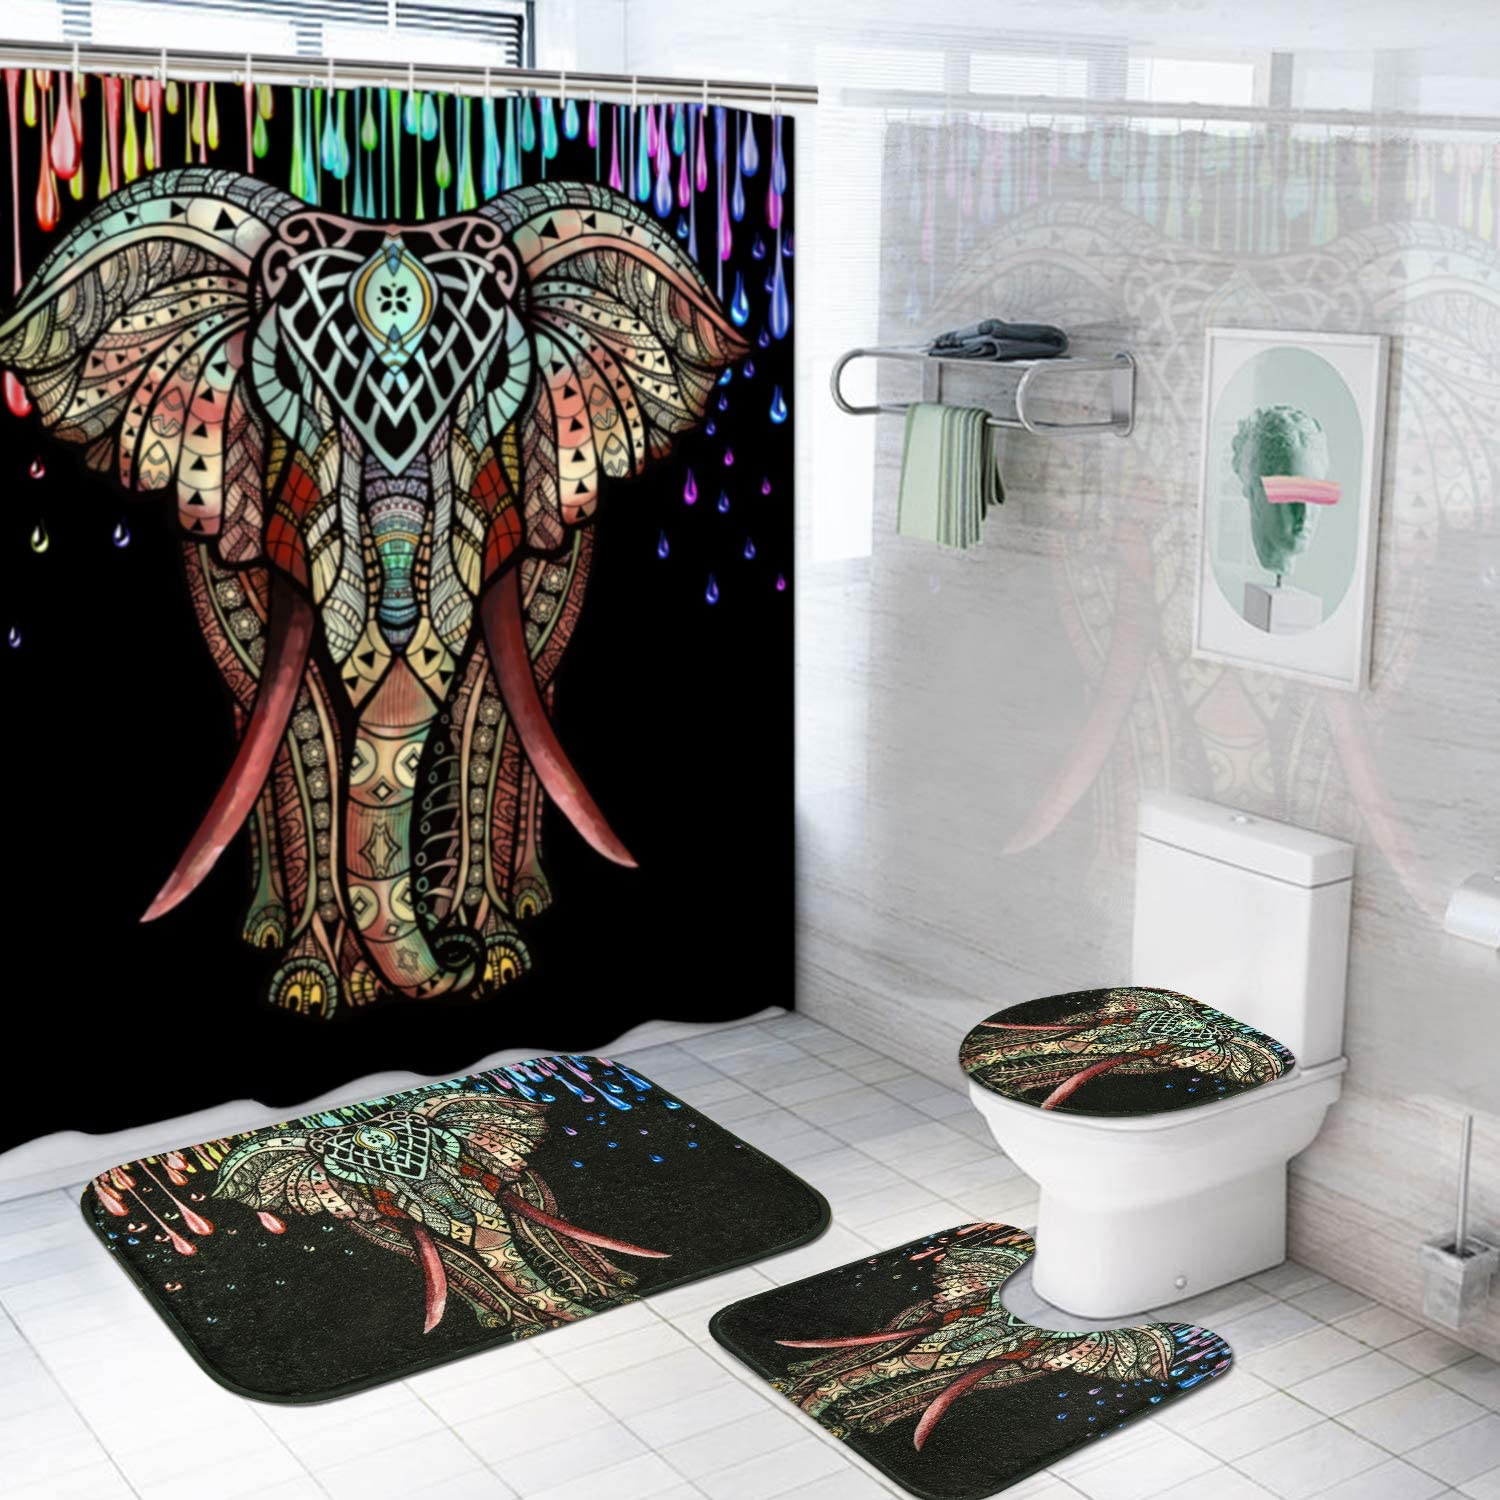 TAMOC 4 Pcs Colorful Elephant Shower Curtain Set with Non-Slip Rug, Toilet Lid Cover and Bath Mat, Mandala Indian Elephant Shower Curtain with 12 Hooks, Waterproof African Shower Curtain, Black